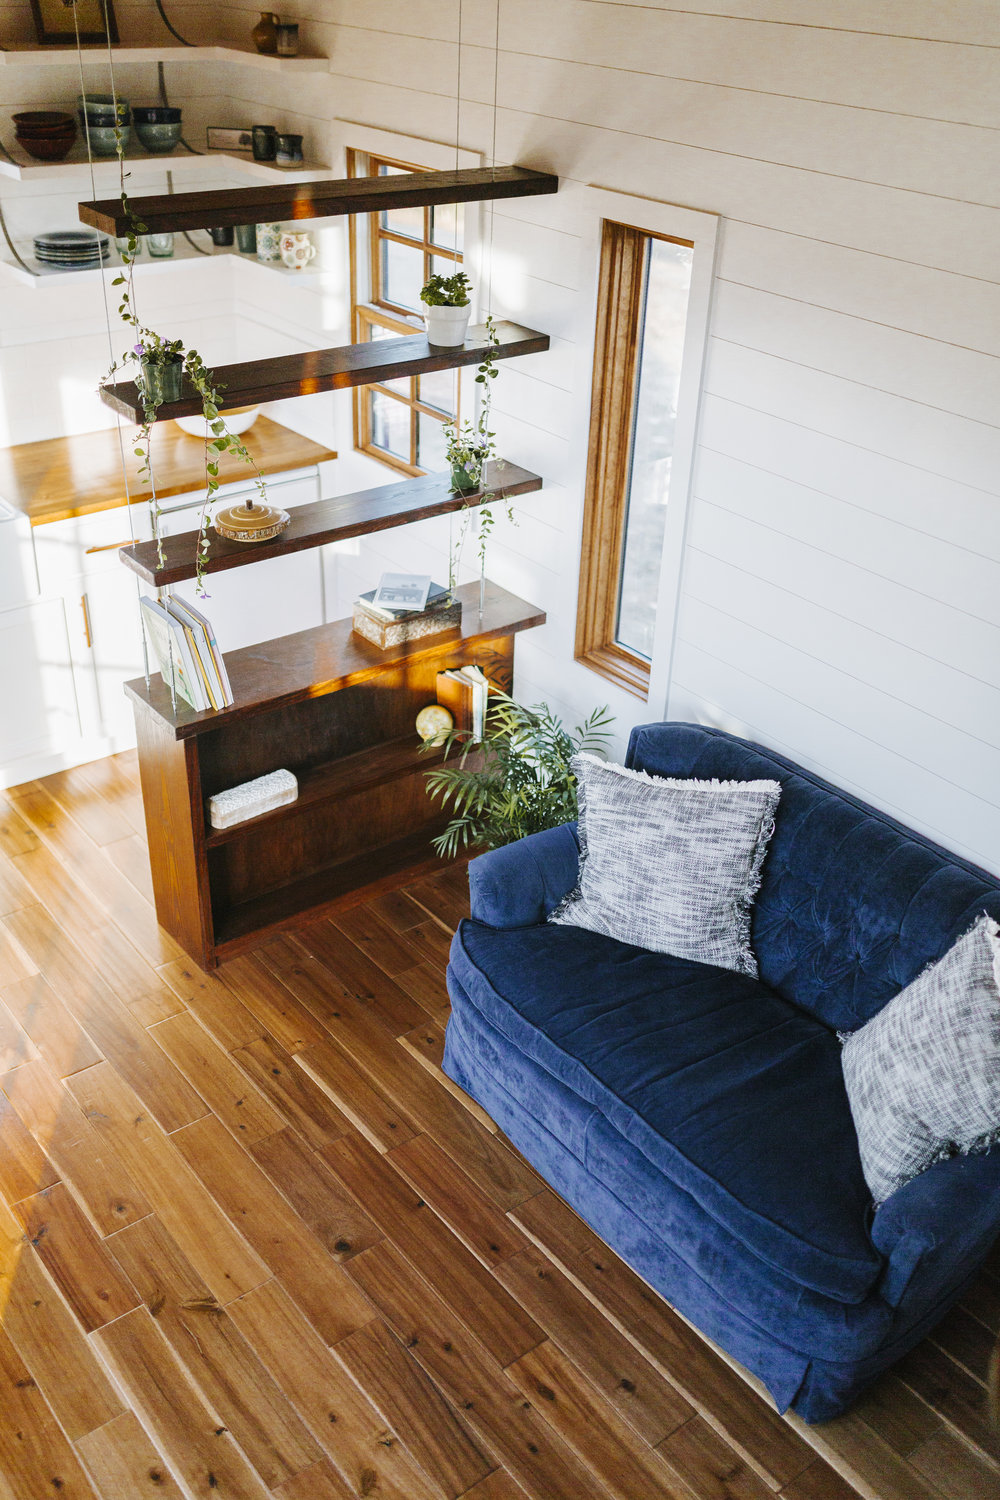 The Monocle by Wind River Tiny Homes - suspended cable shelving, wood clad windows, hardwood flooring, shiplap siding